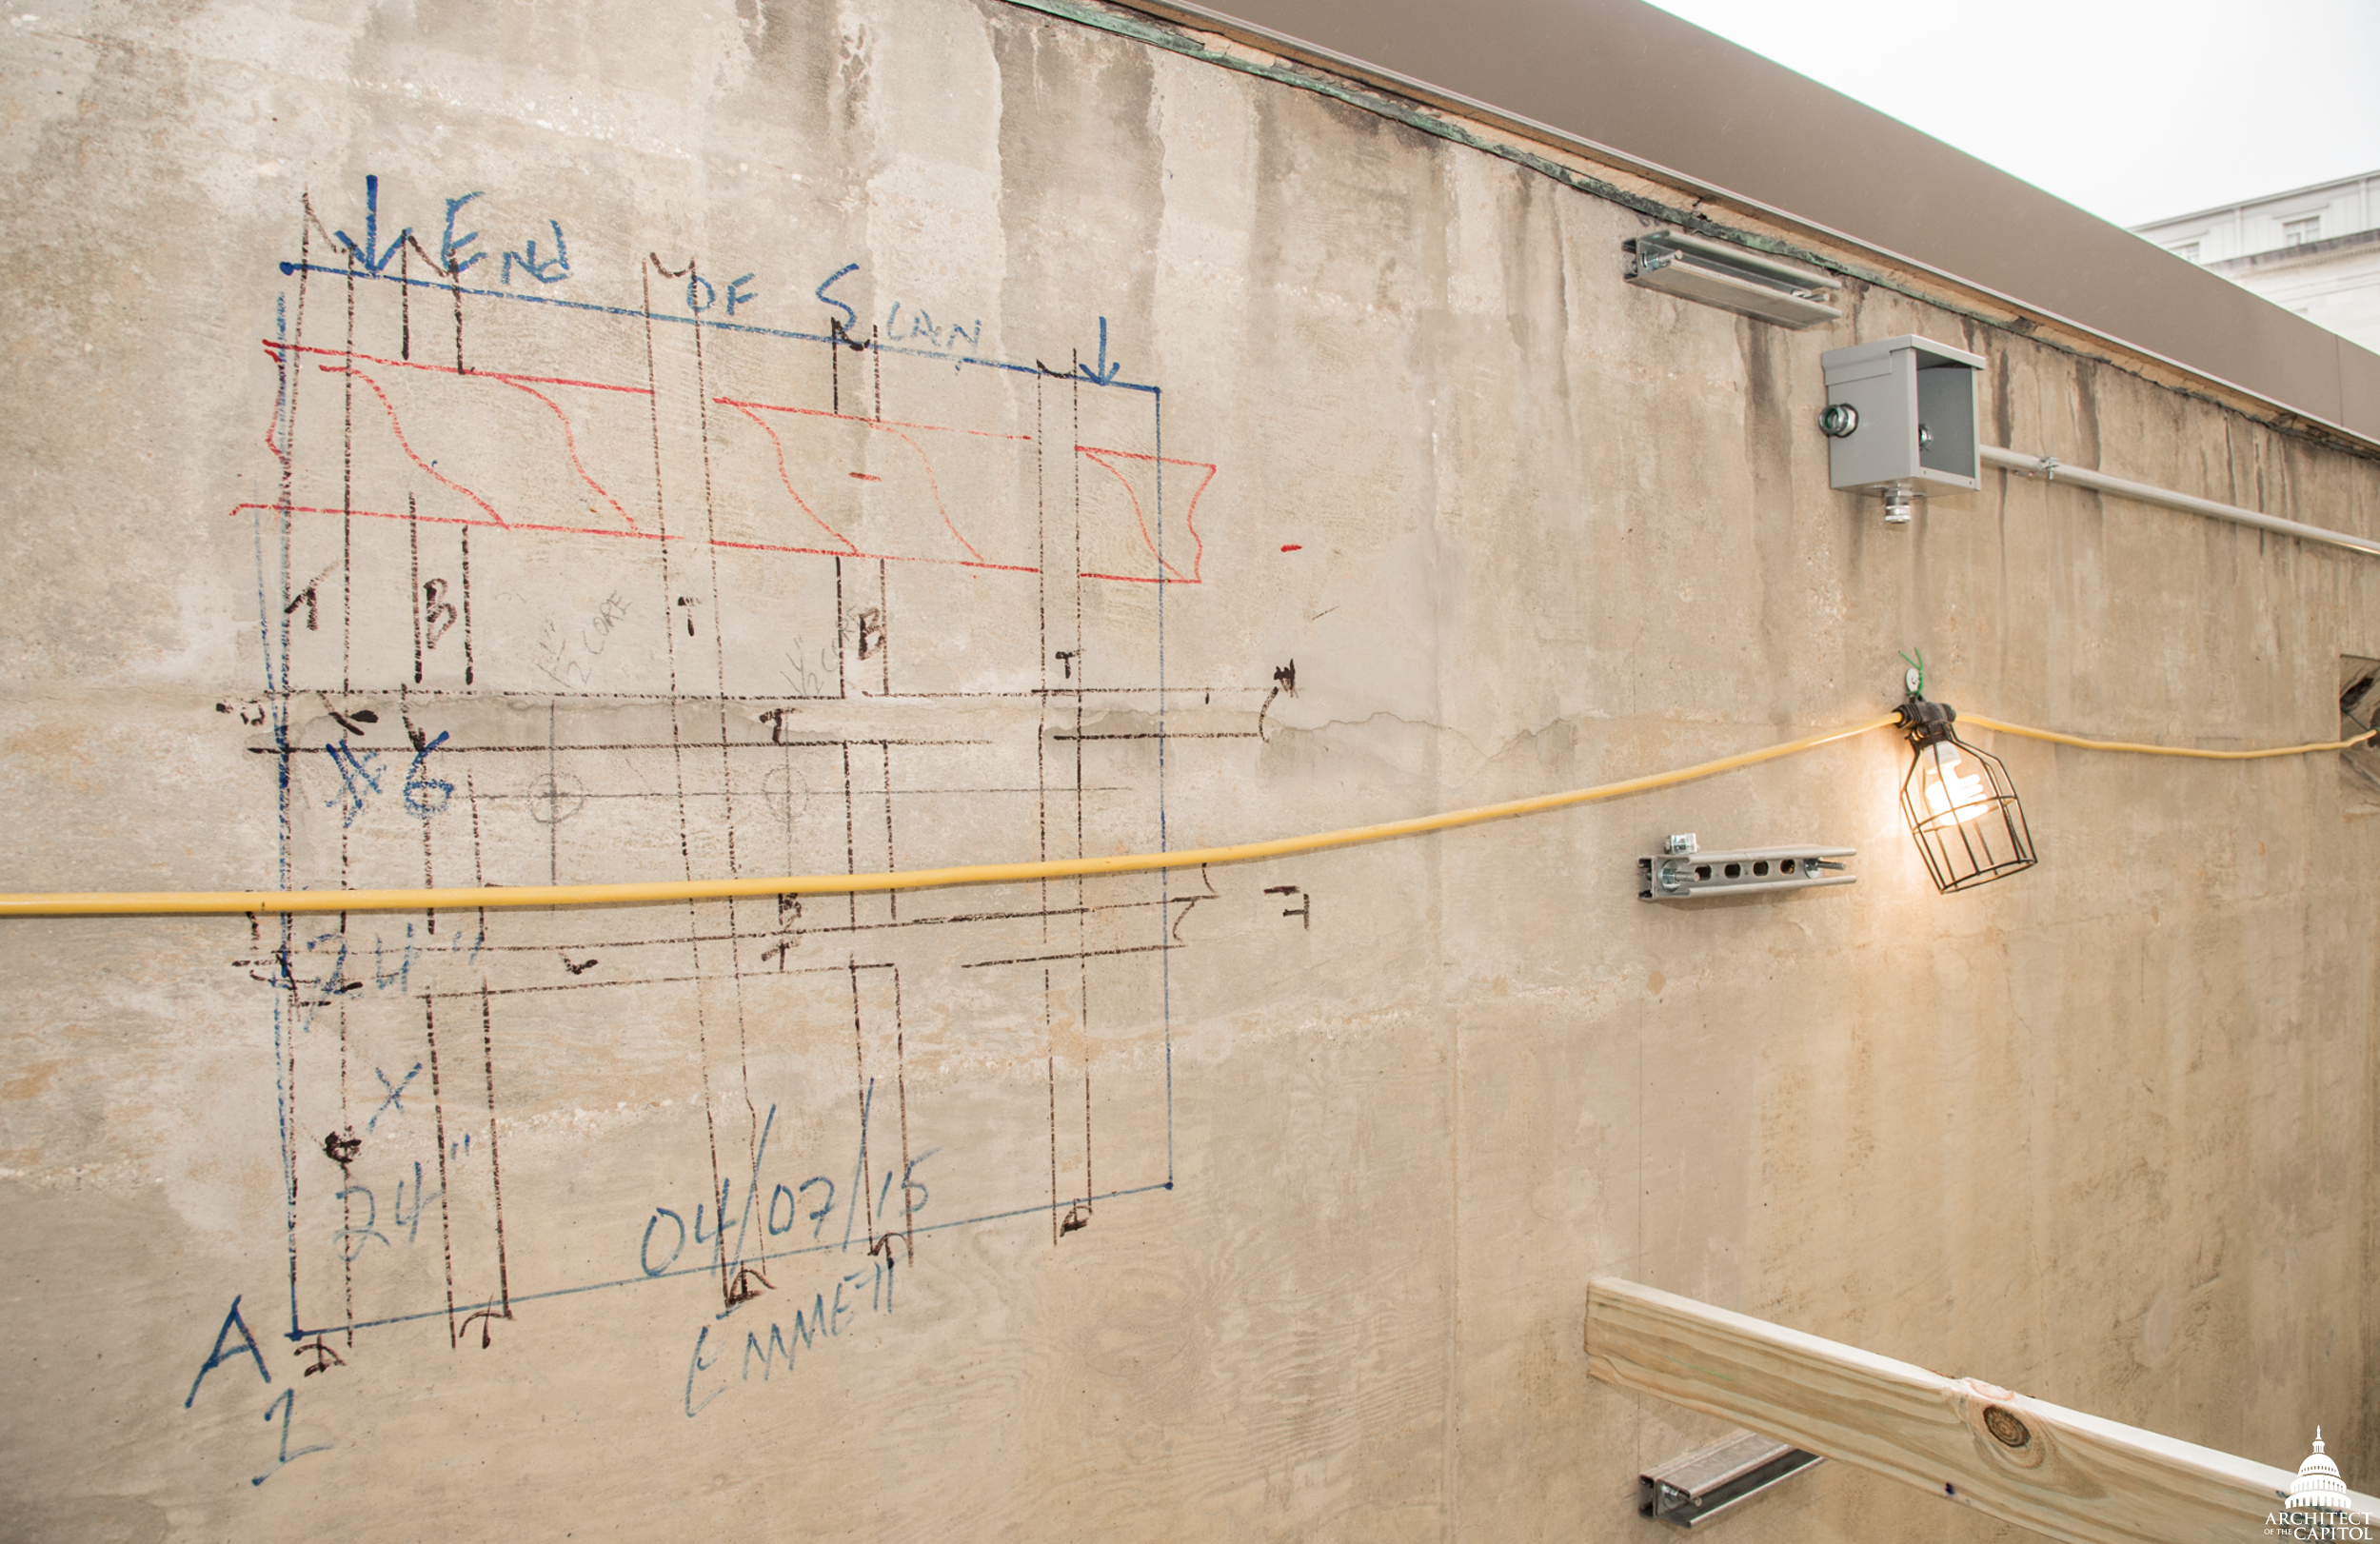 GPR drawing on wall.